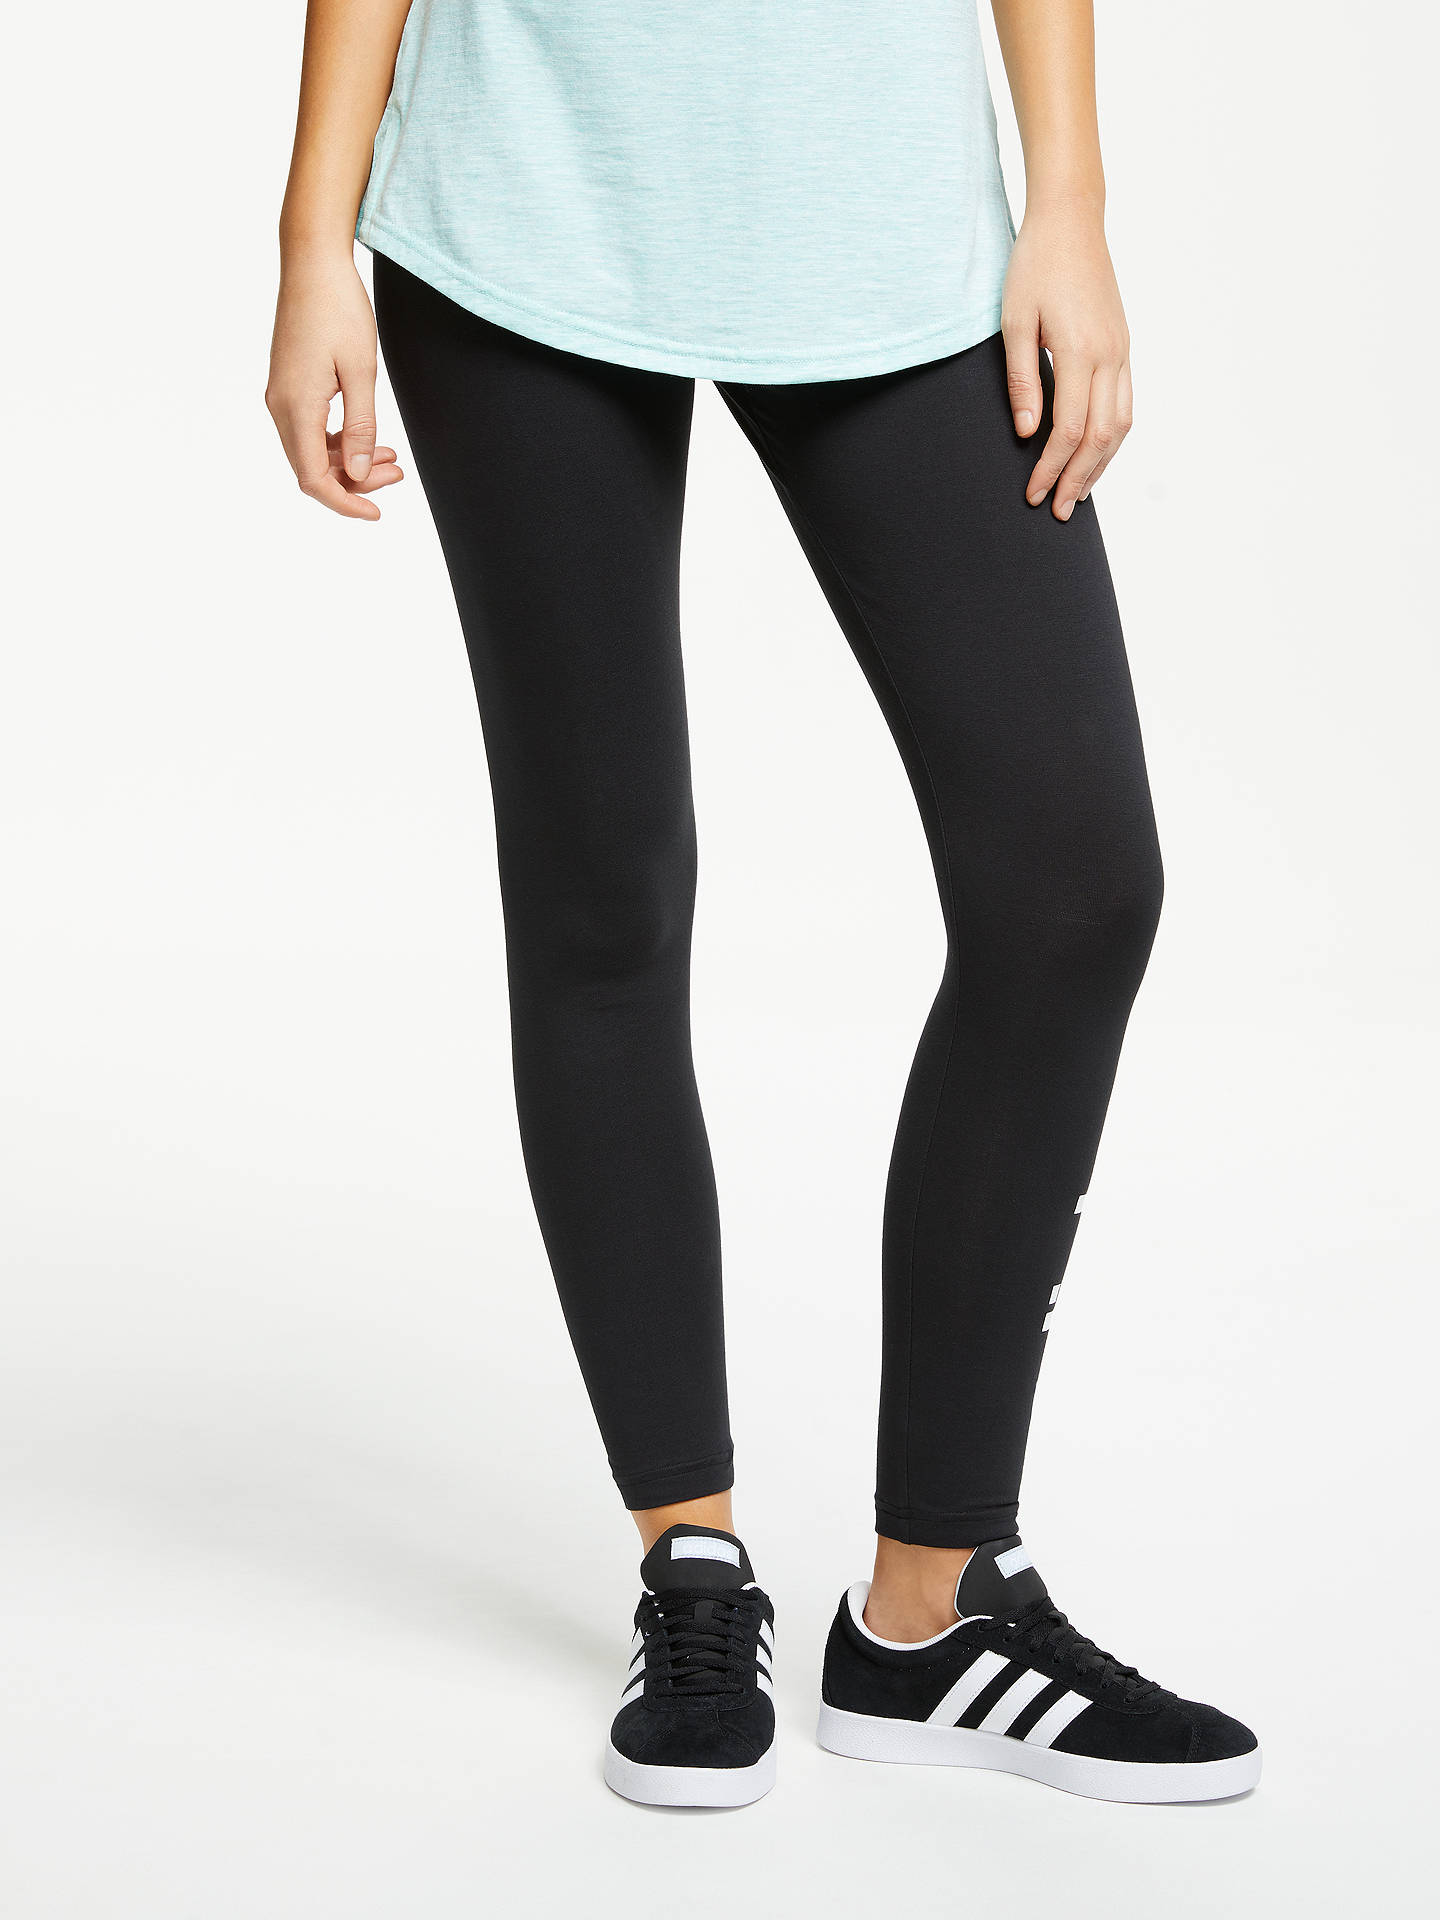 At Partners amp; Adidas Essentials Lewis Linear Tights John a6zwUwqtg